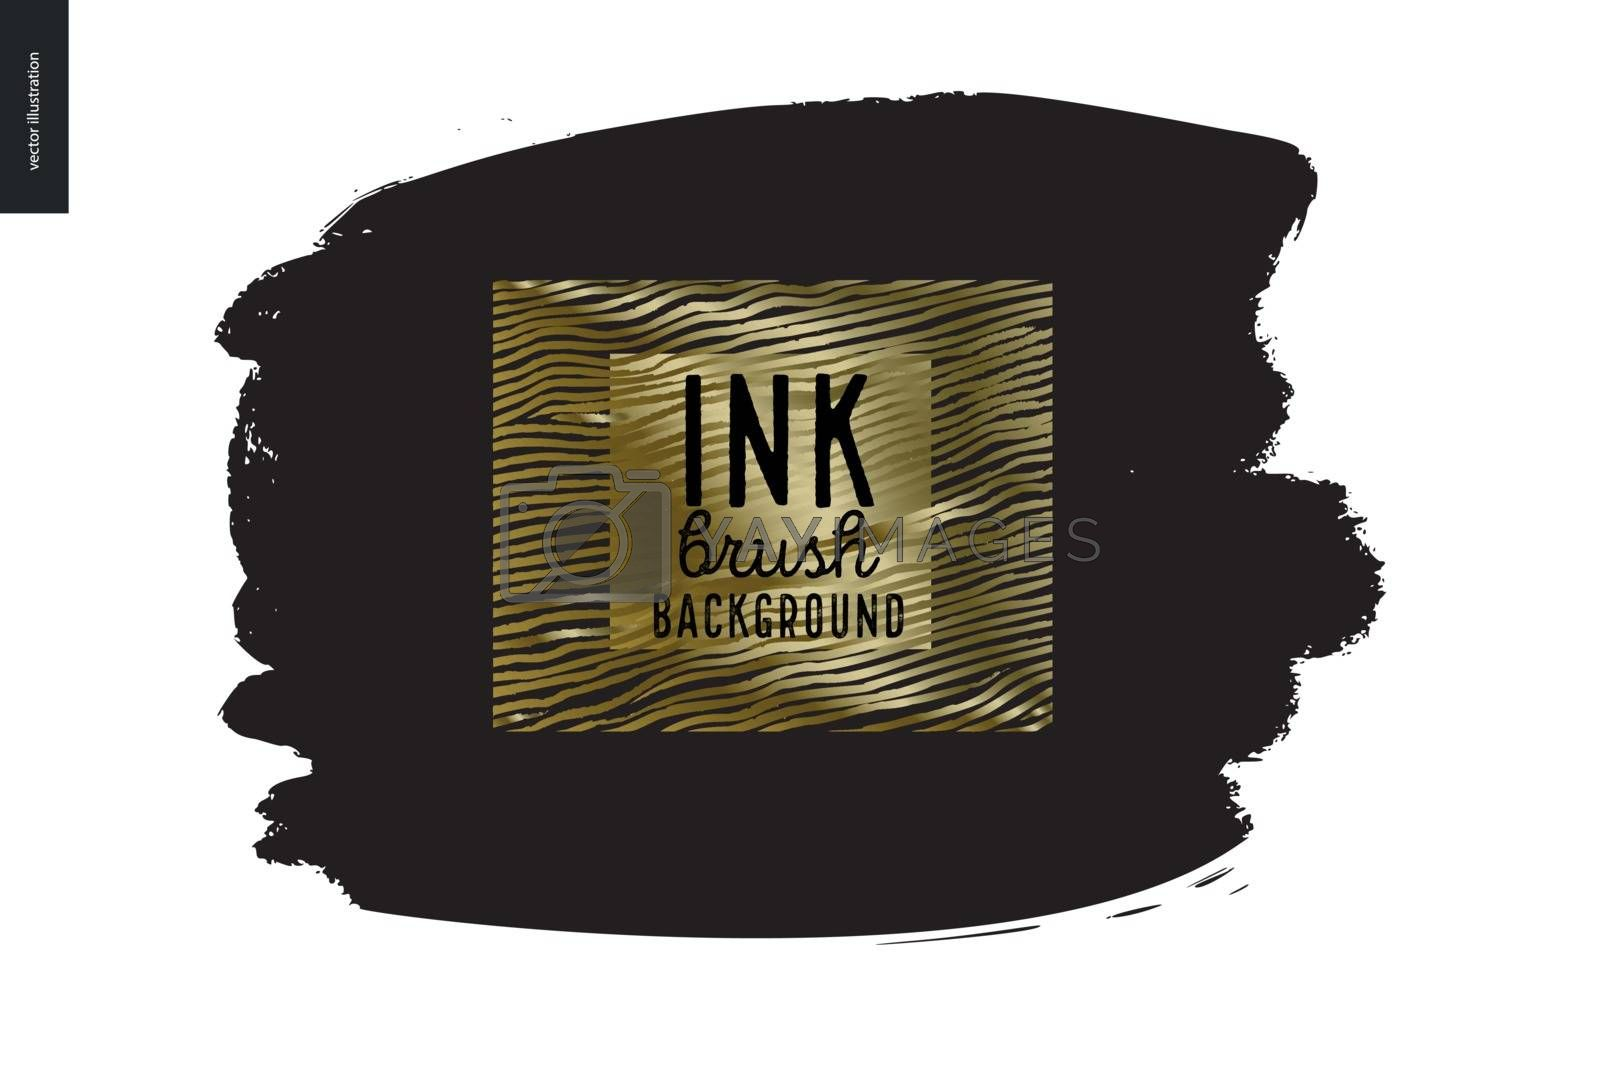 Ink Brush Background by grivina